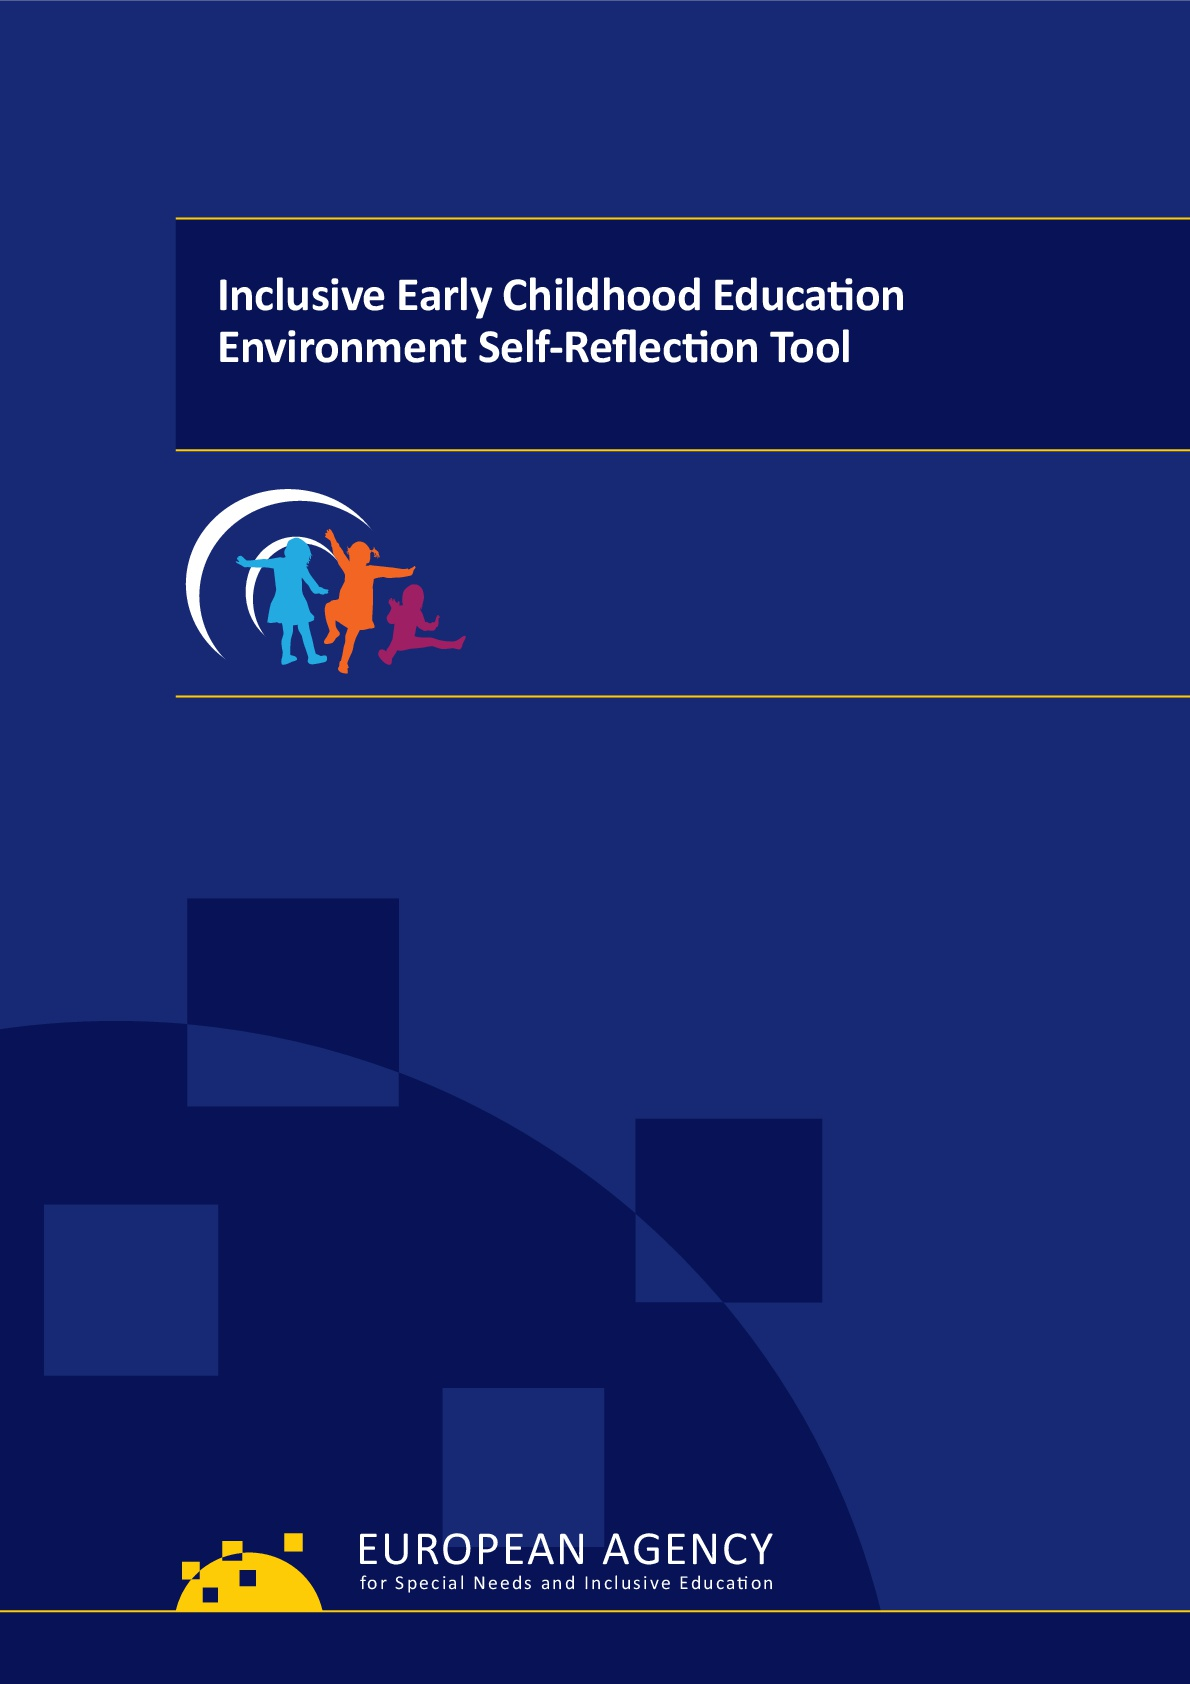 Inclusive Early Childhood Education Environment Self-Reflection Tool